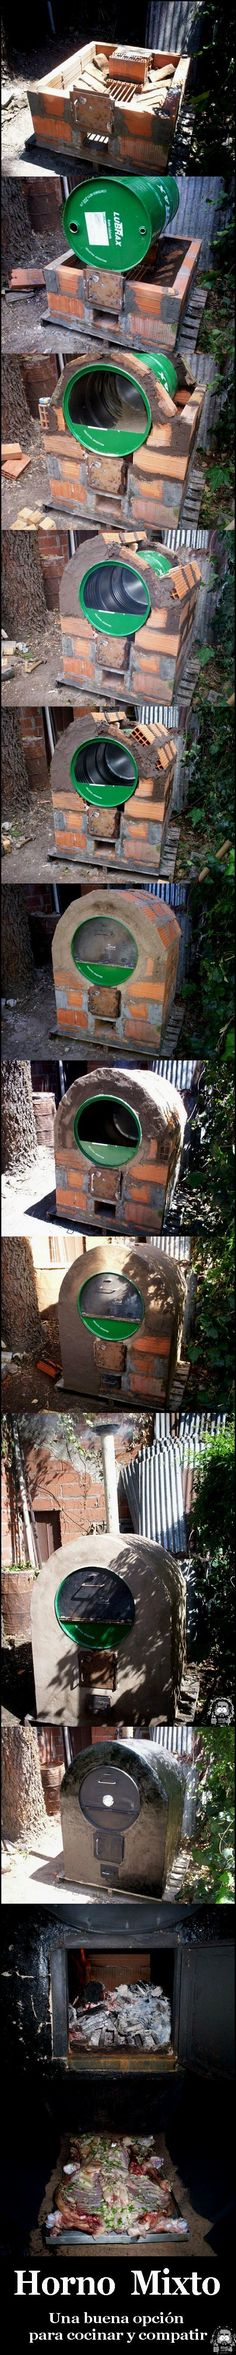 looks like a pizza oven Pizza Oven Outdoor, Outdoor Cooking, Outdoor Projects, Home Projects, Wood Fired Oven, Ideias Diy, Garden Design, Outdoor Living, Diy Home Decor